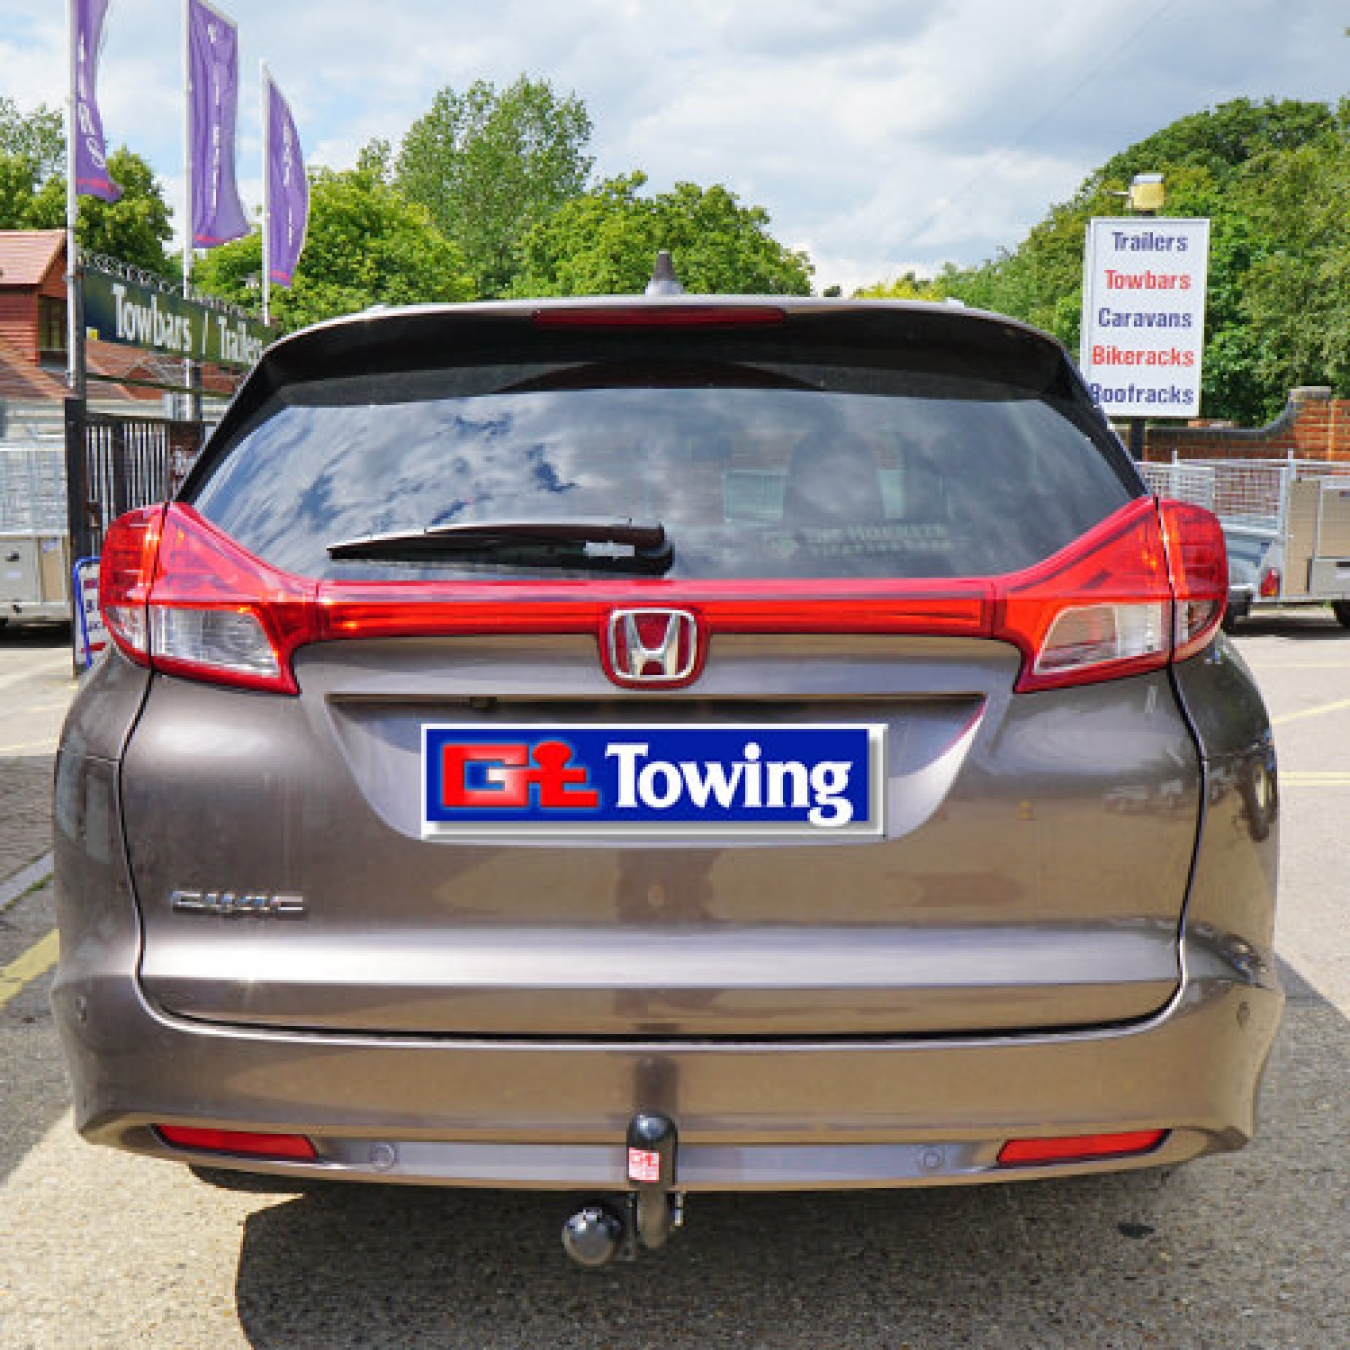 Civic Witter Swanneck Towbar